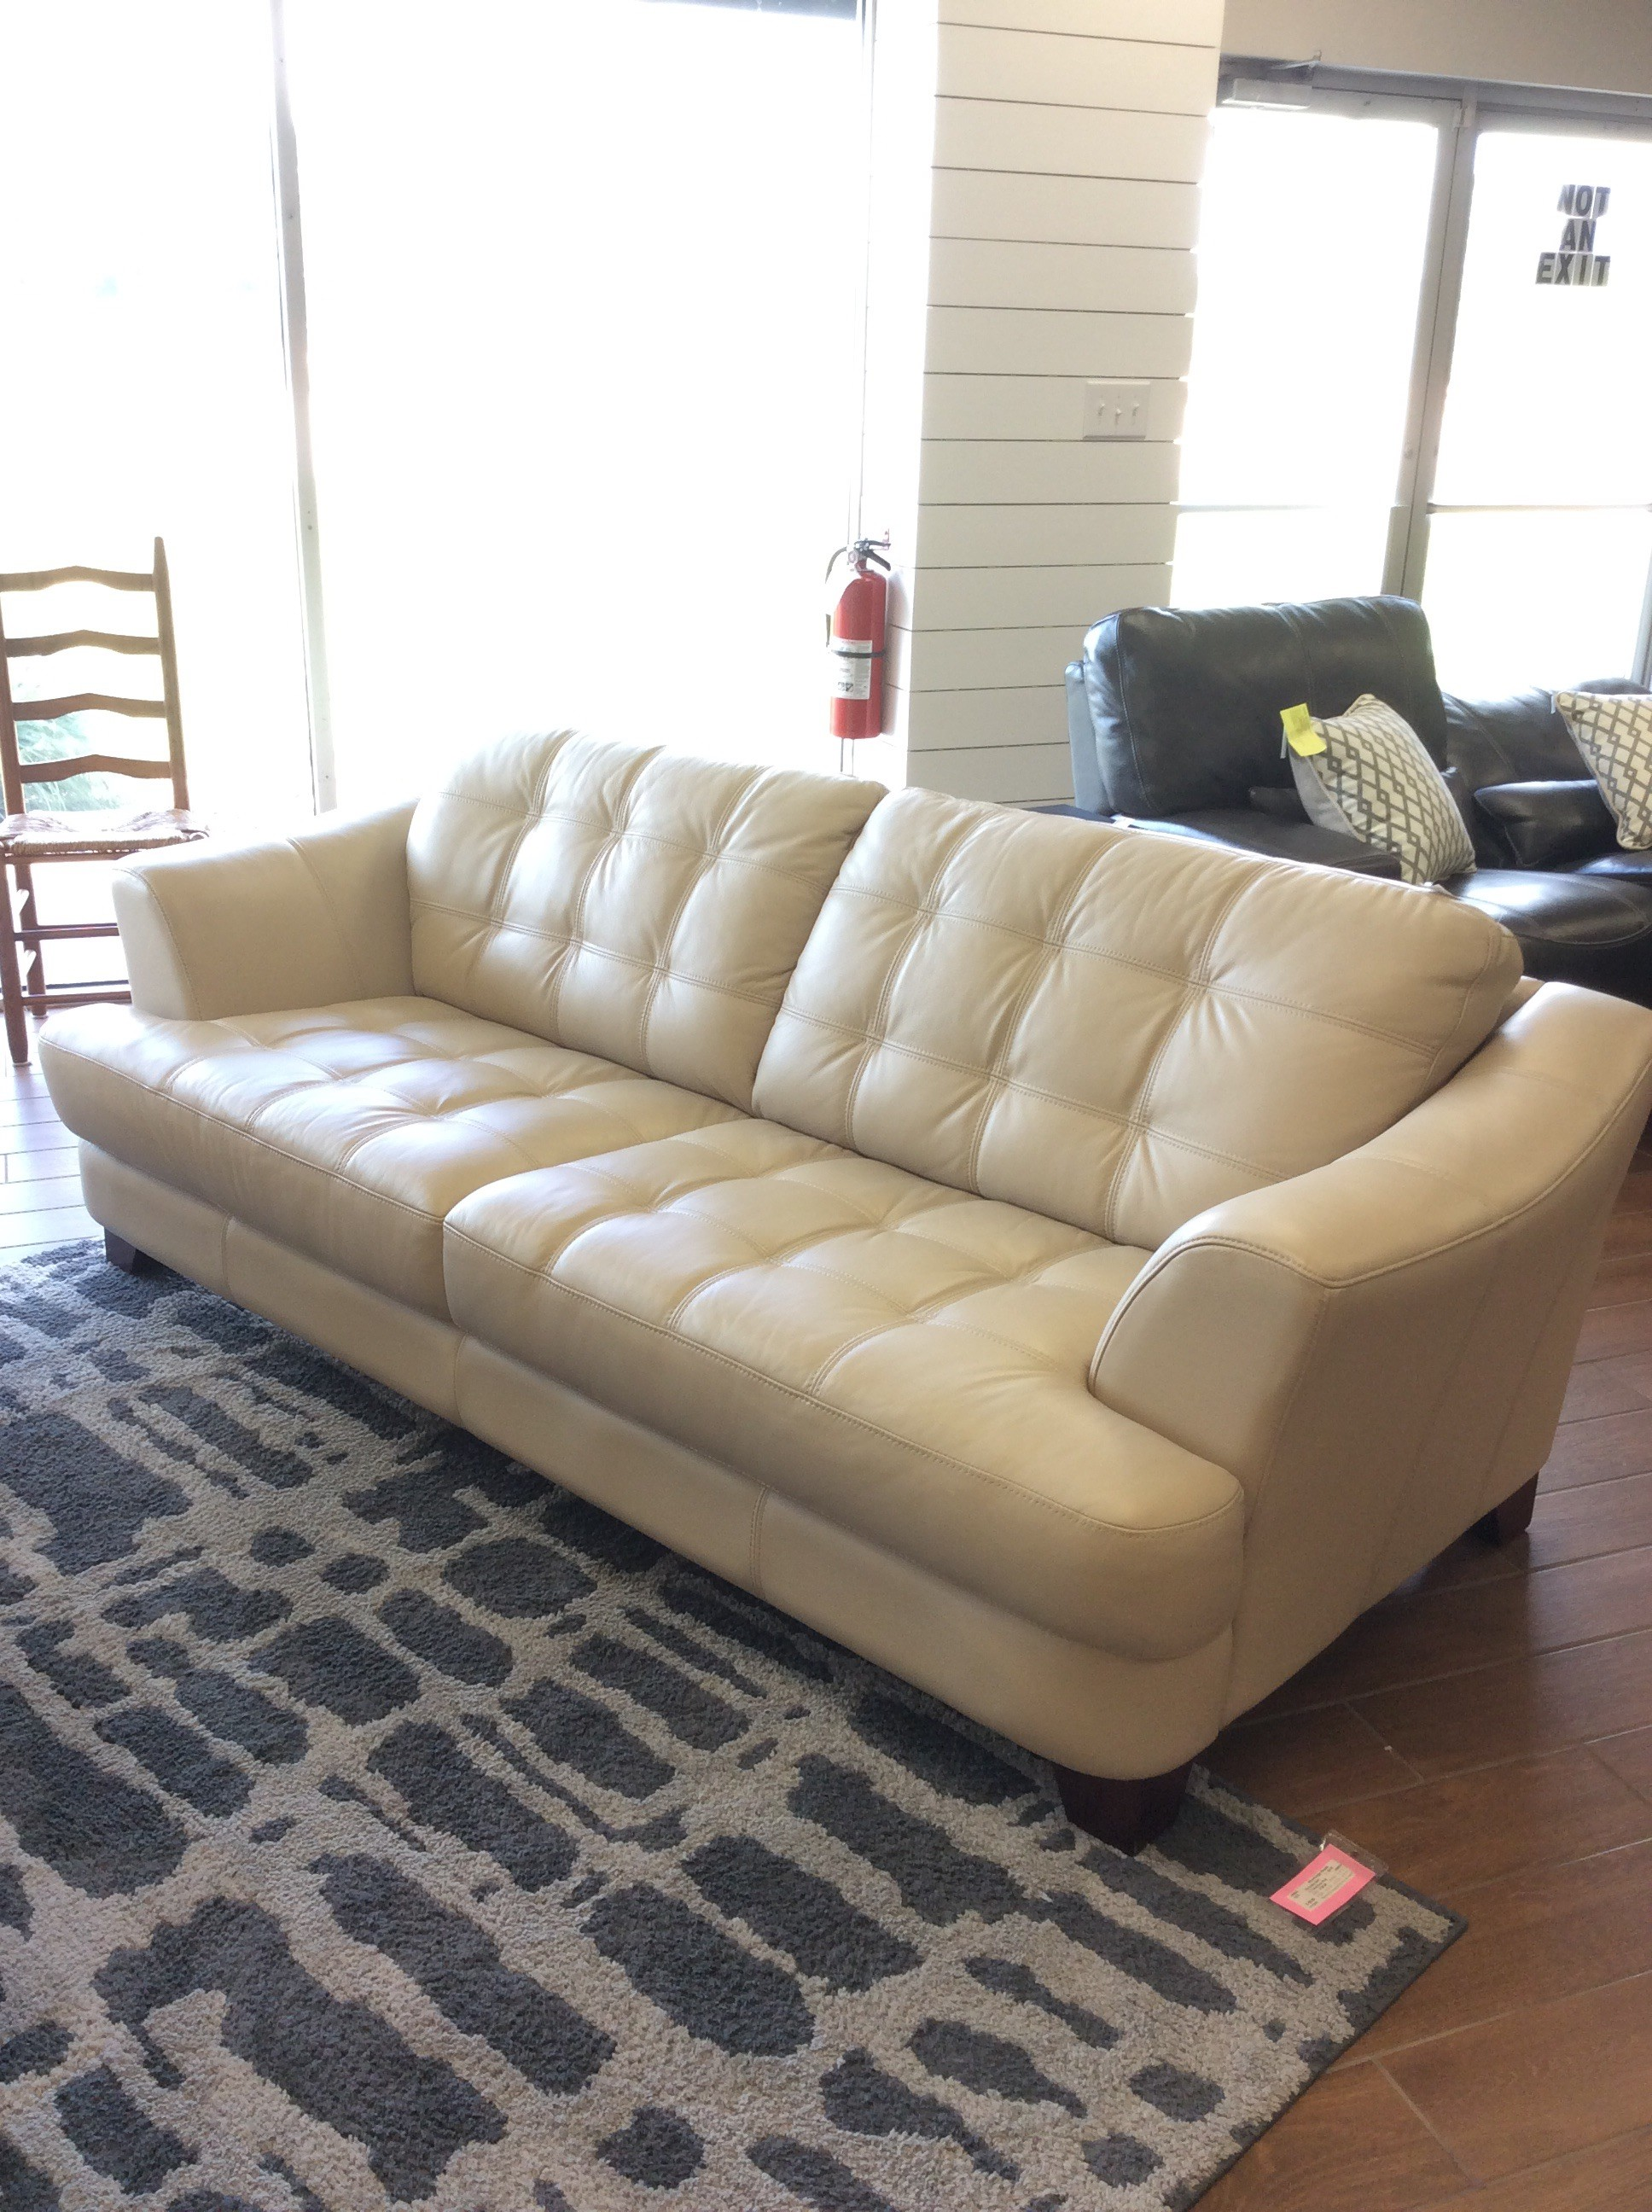 This sofa is deliscious! Modern and sleek, it's in perfect condition and priced well. Upholstered in a soft, supple vanilla colored leather. All cushions are attached, tufted with ticking. What could be better than that? Two of them would be better and we have two of them! Come by soon, they won't be here long!